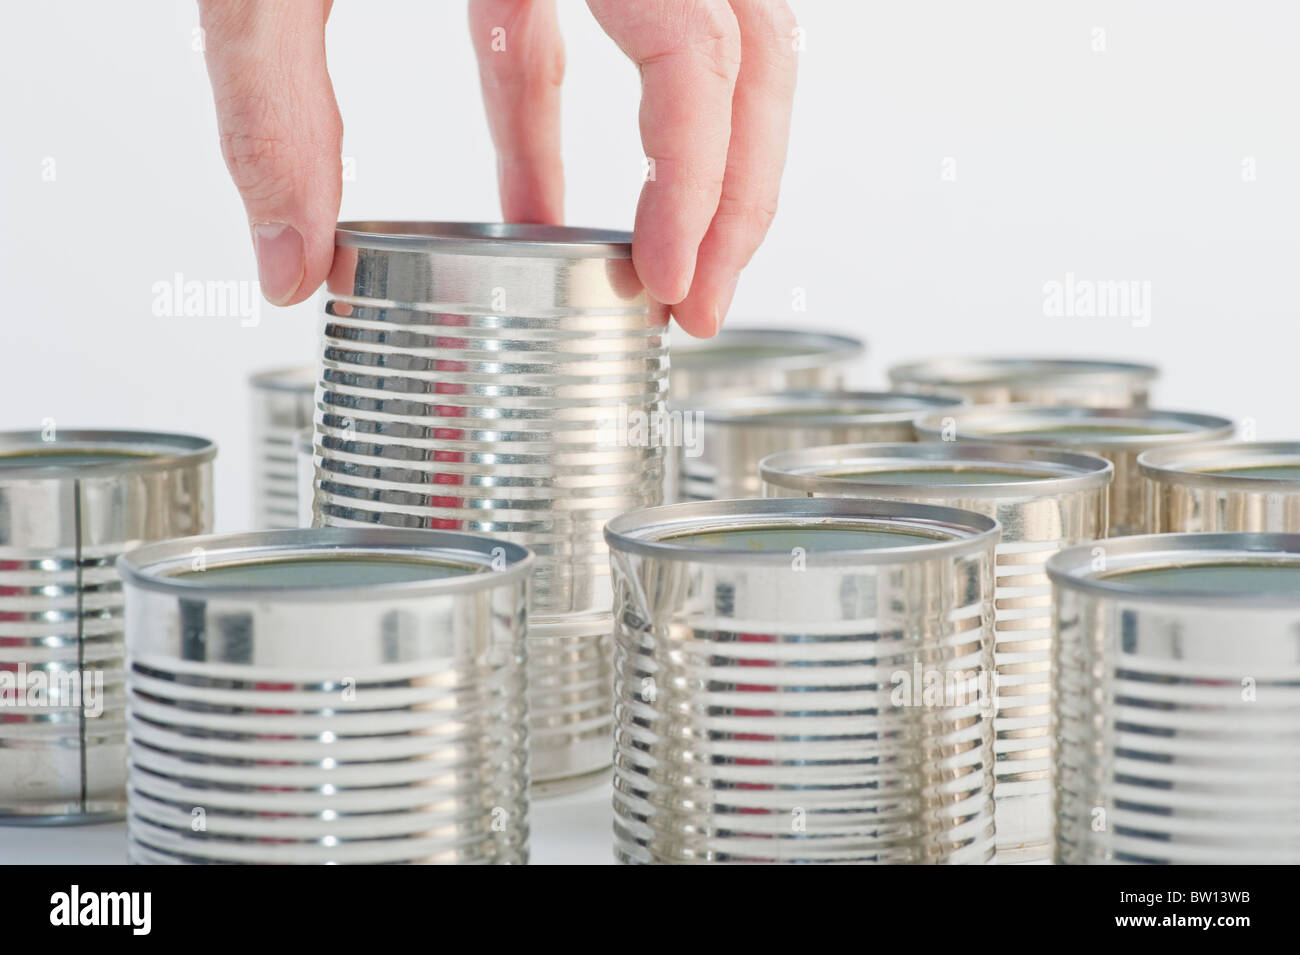 Recycling of empty cans - Stock Image